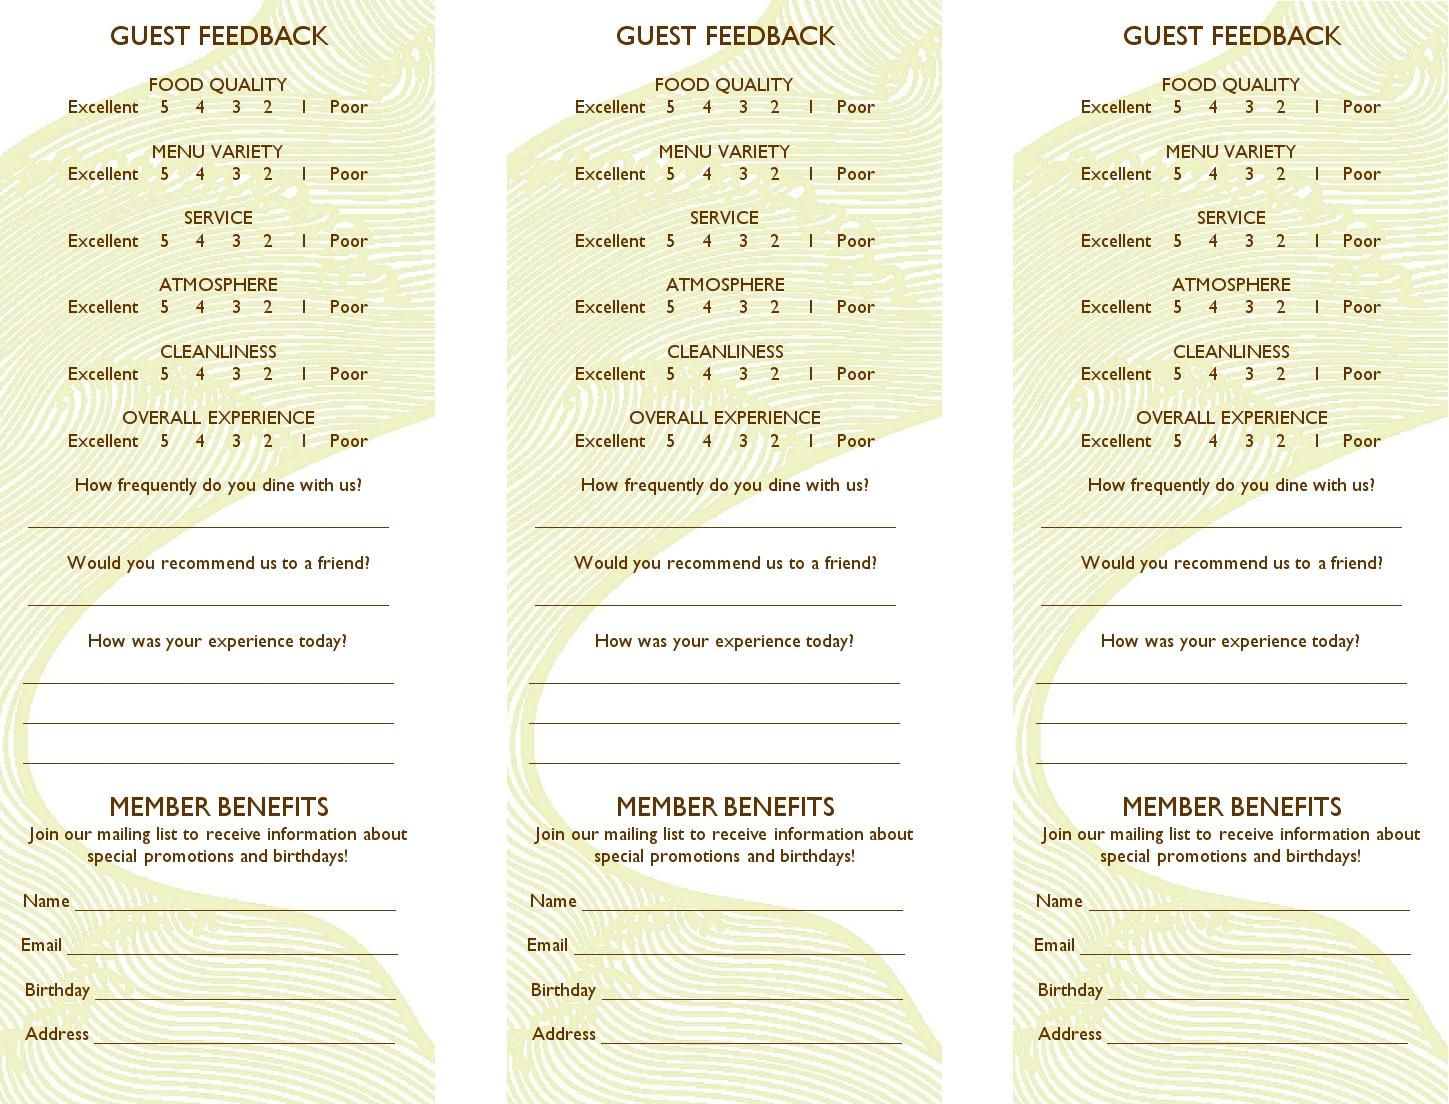 free restaurant comment card template dramakoreaterbarucom centerpieces pinterest card. Black Bedroom Furniture Sets. Home Design Ideas